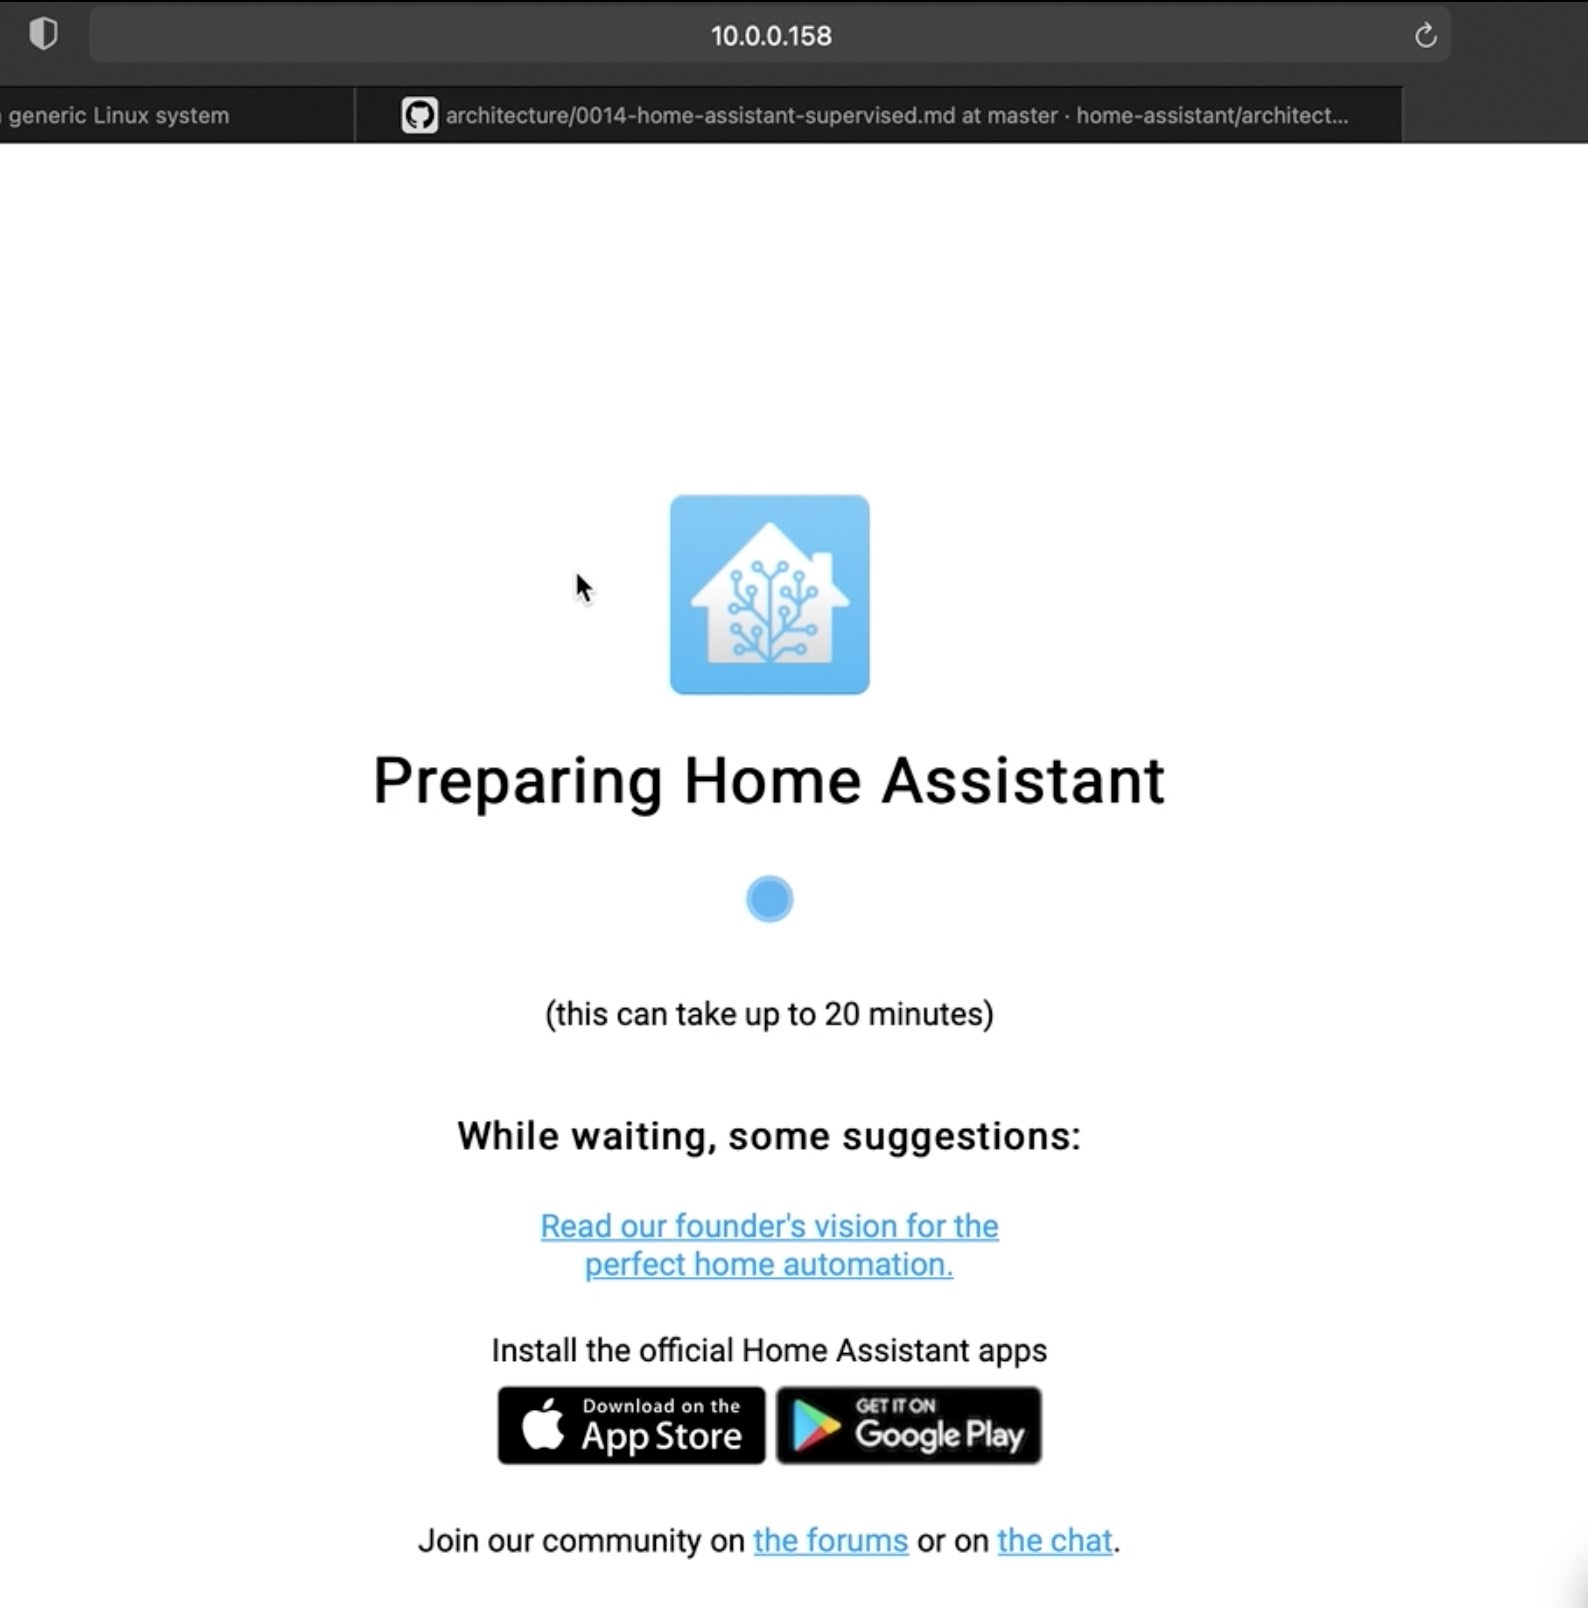 To install Home Assistant you should wait a bit for the installer script to finish.